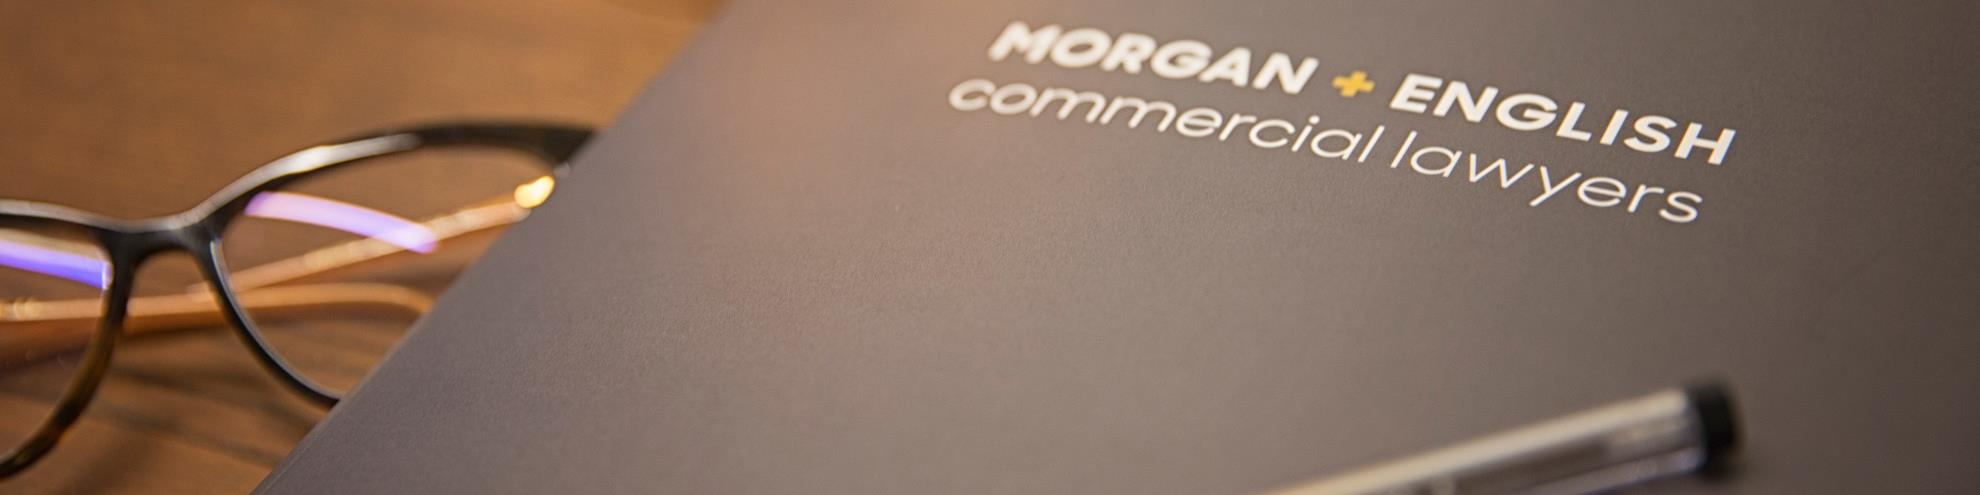 Morgan English Commercial Lawyers folder, pen and glasses